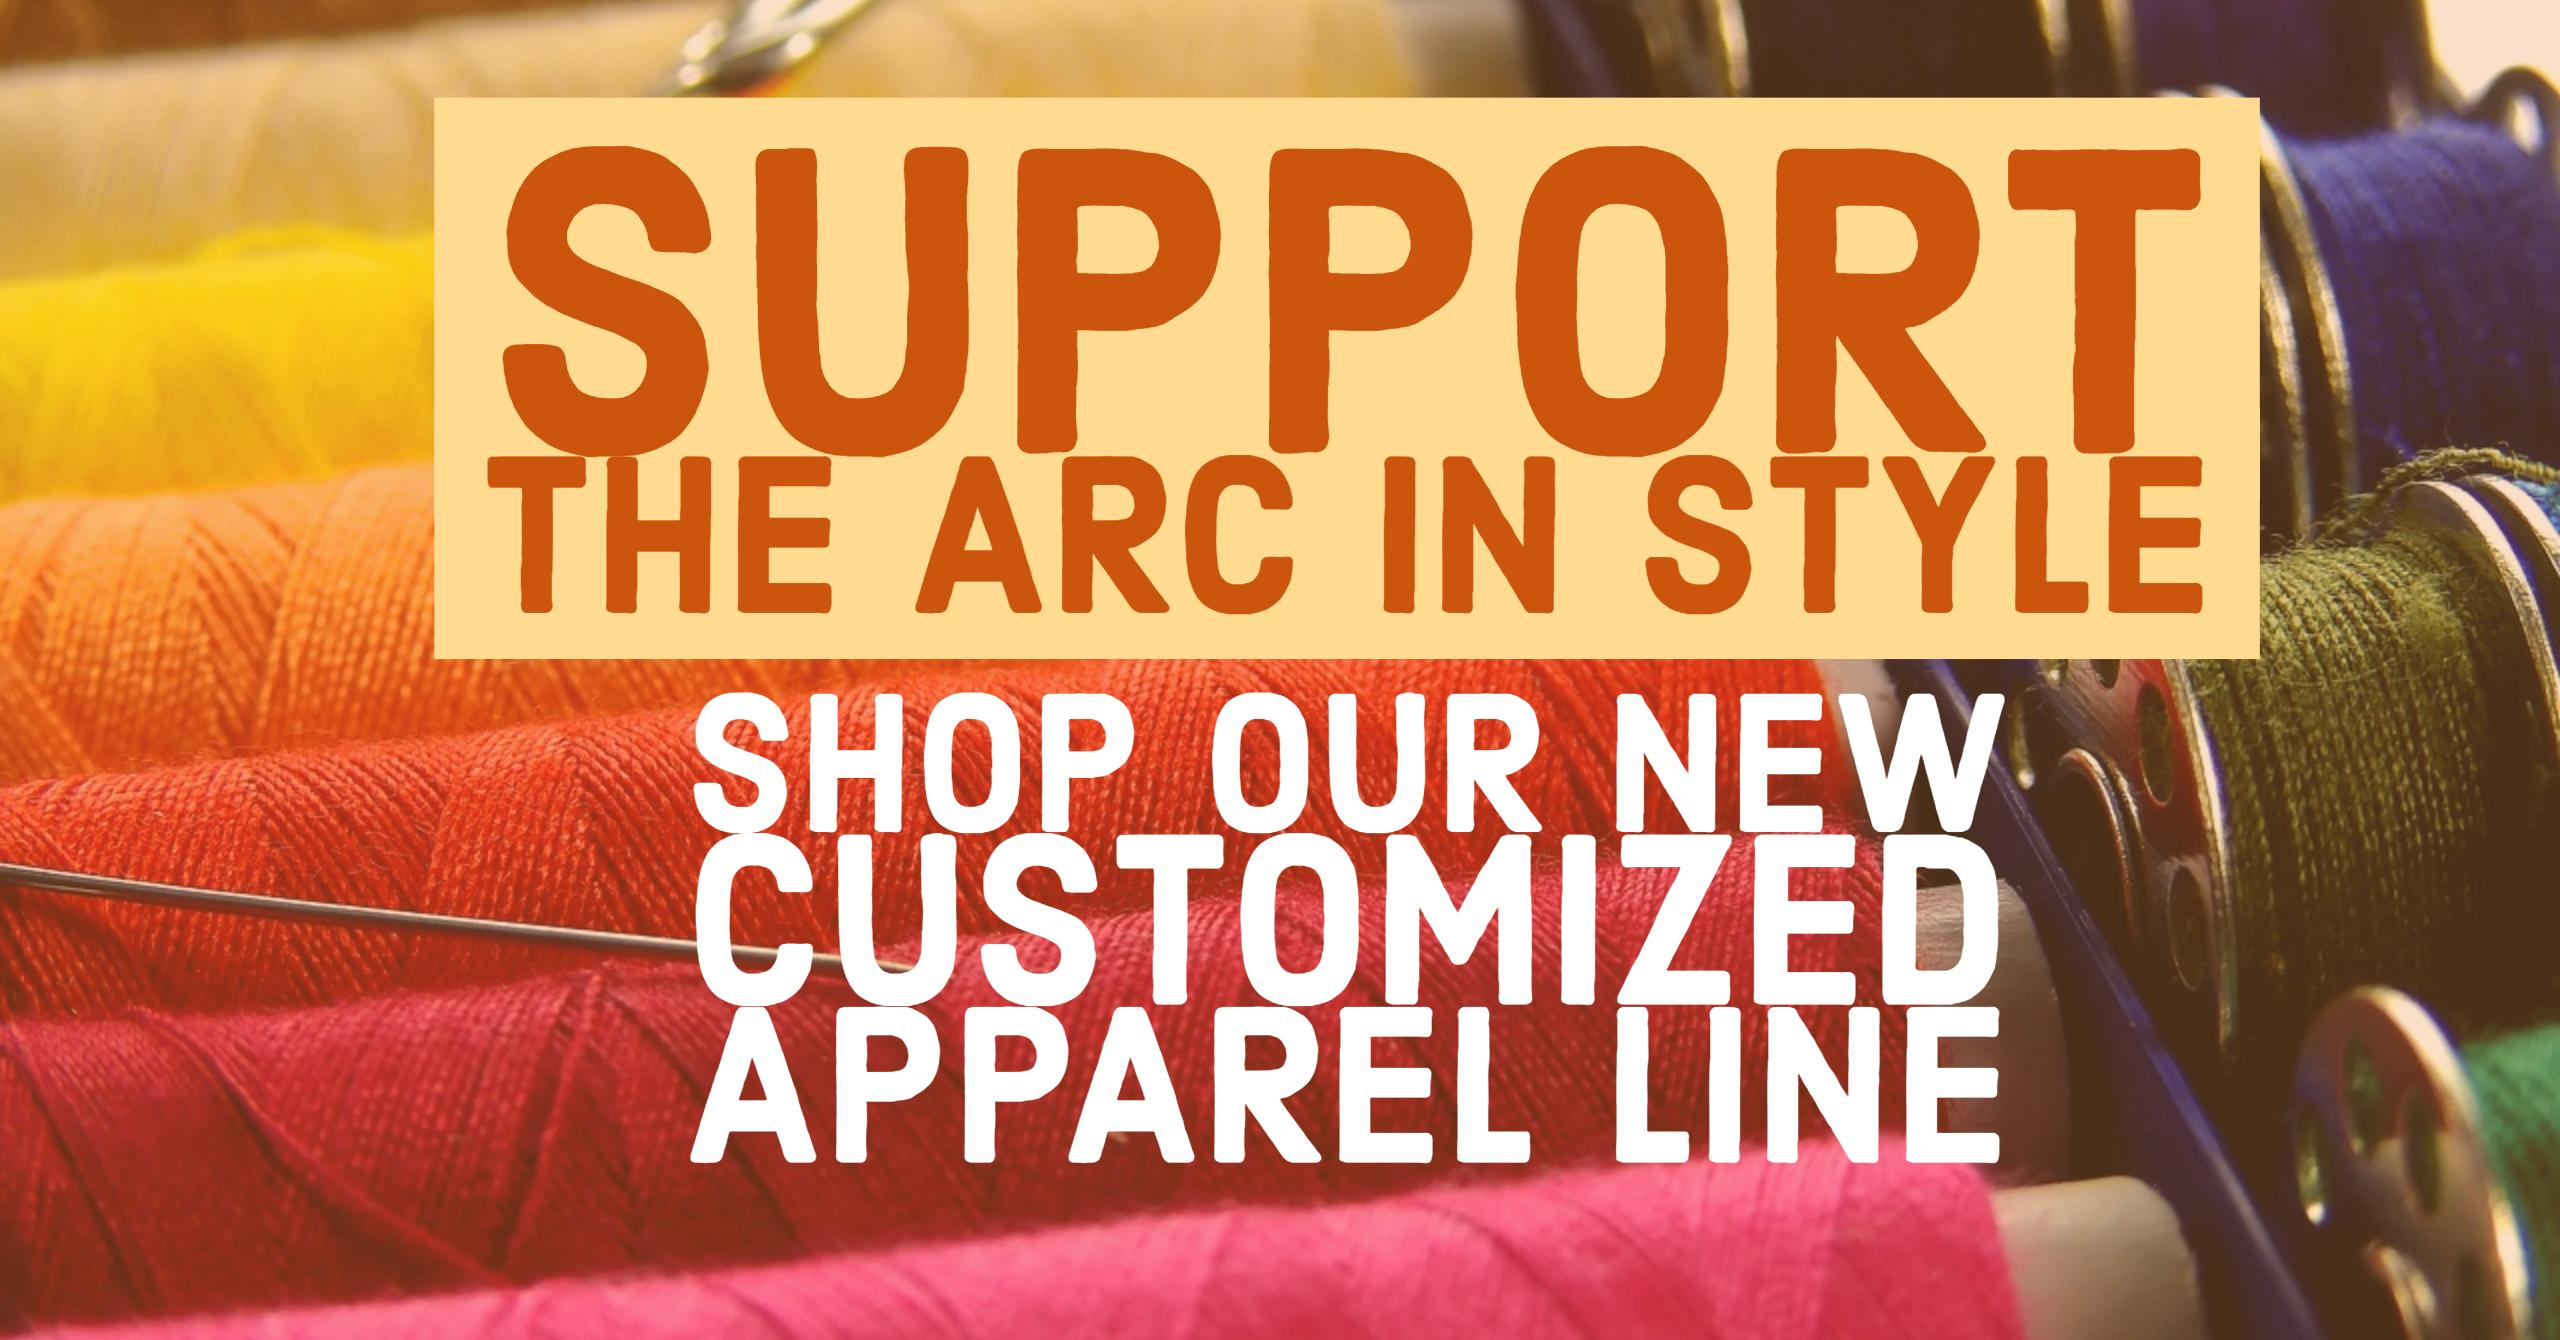 Support The Arc in Style!